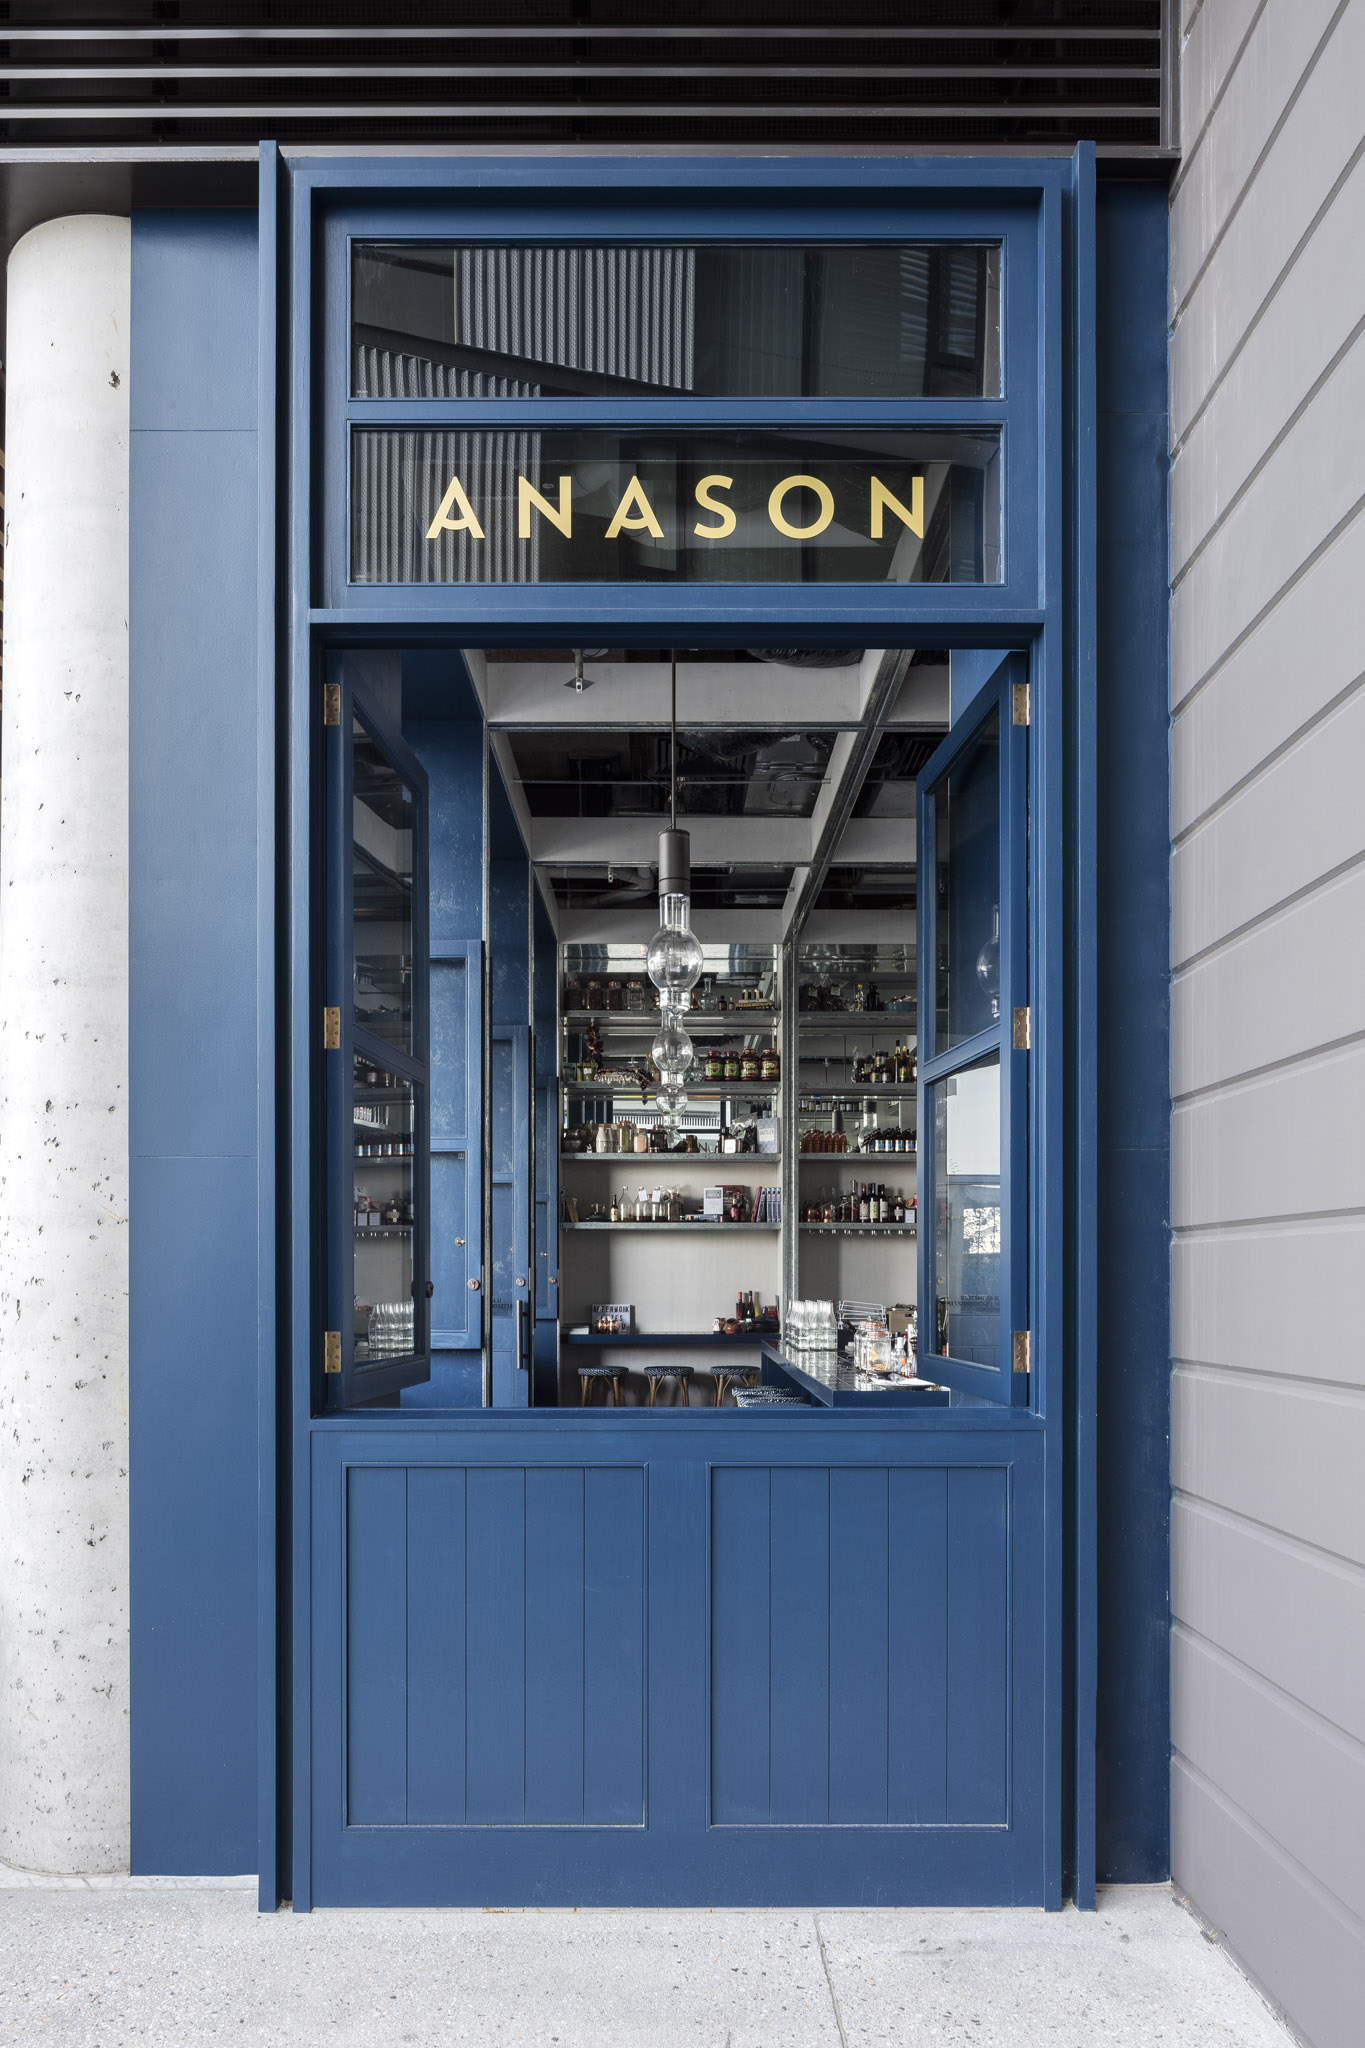 Anason by George Livissianis